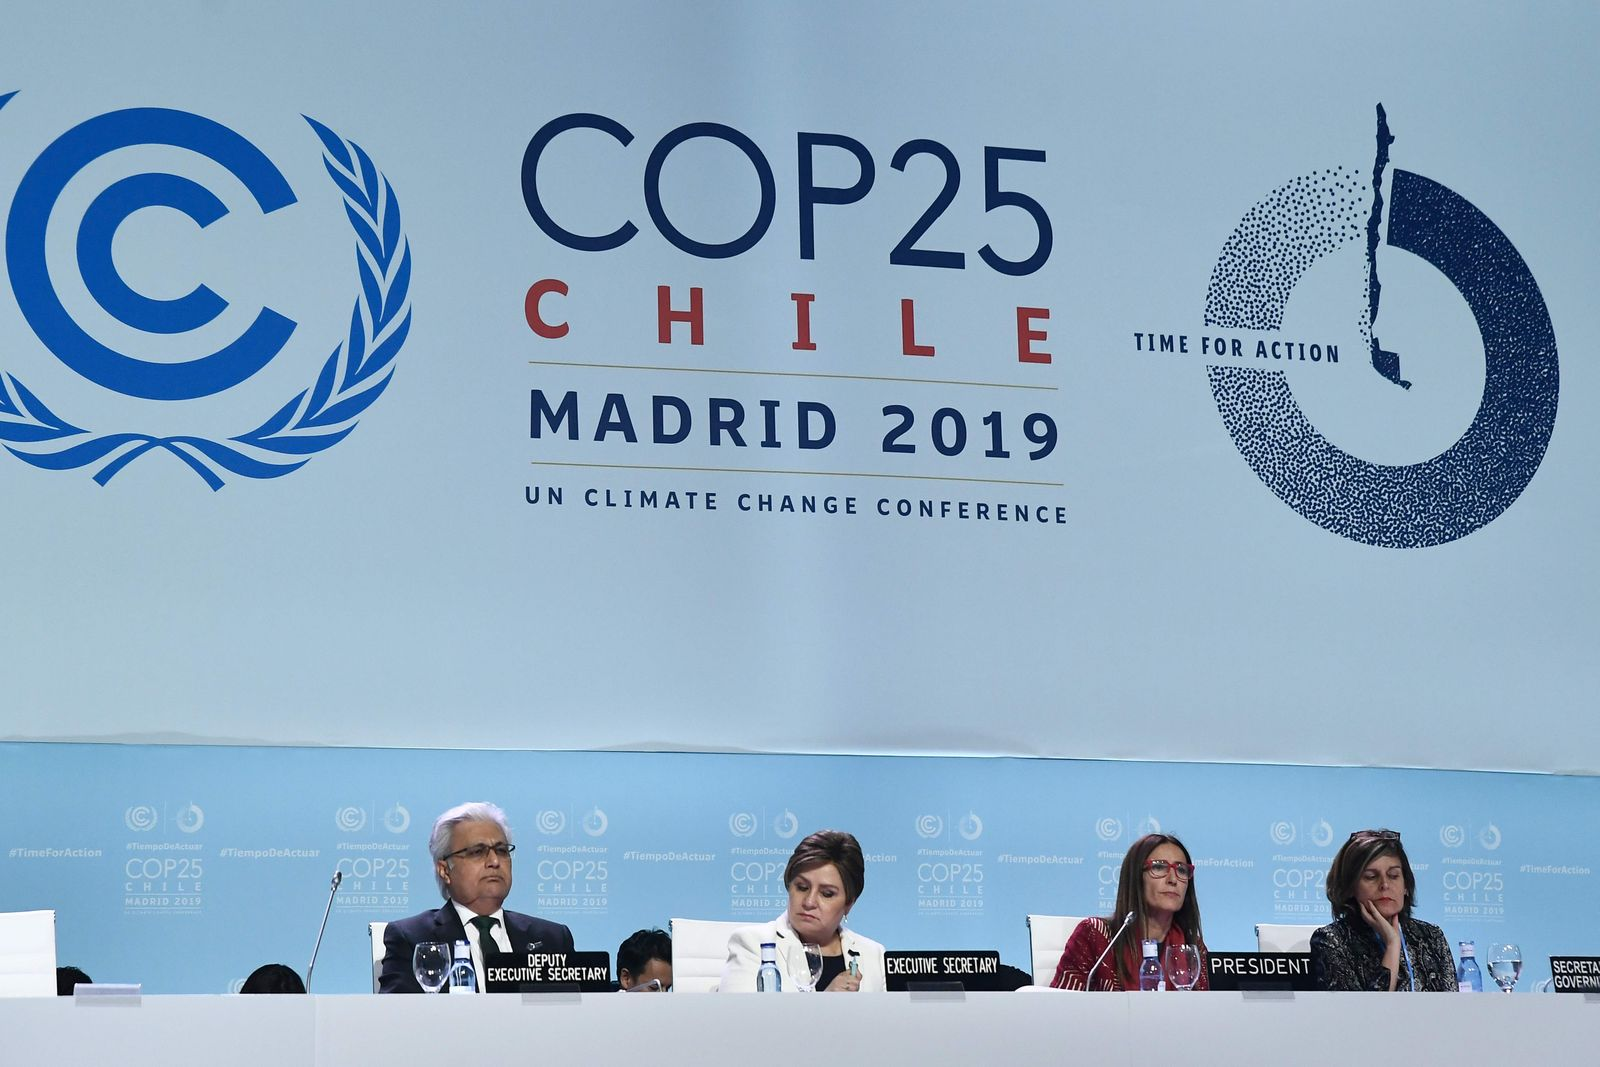 UN Climate Change Conference COP25 at the IFEMA